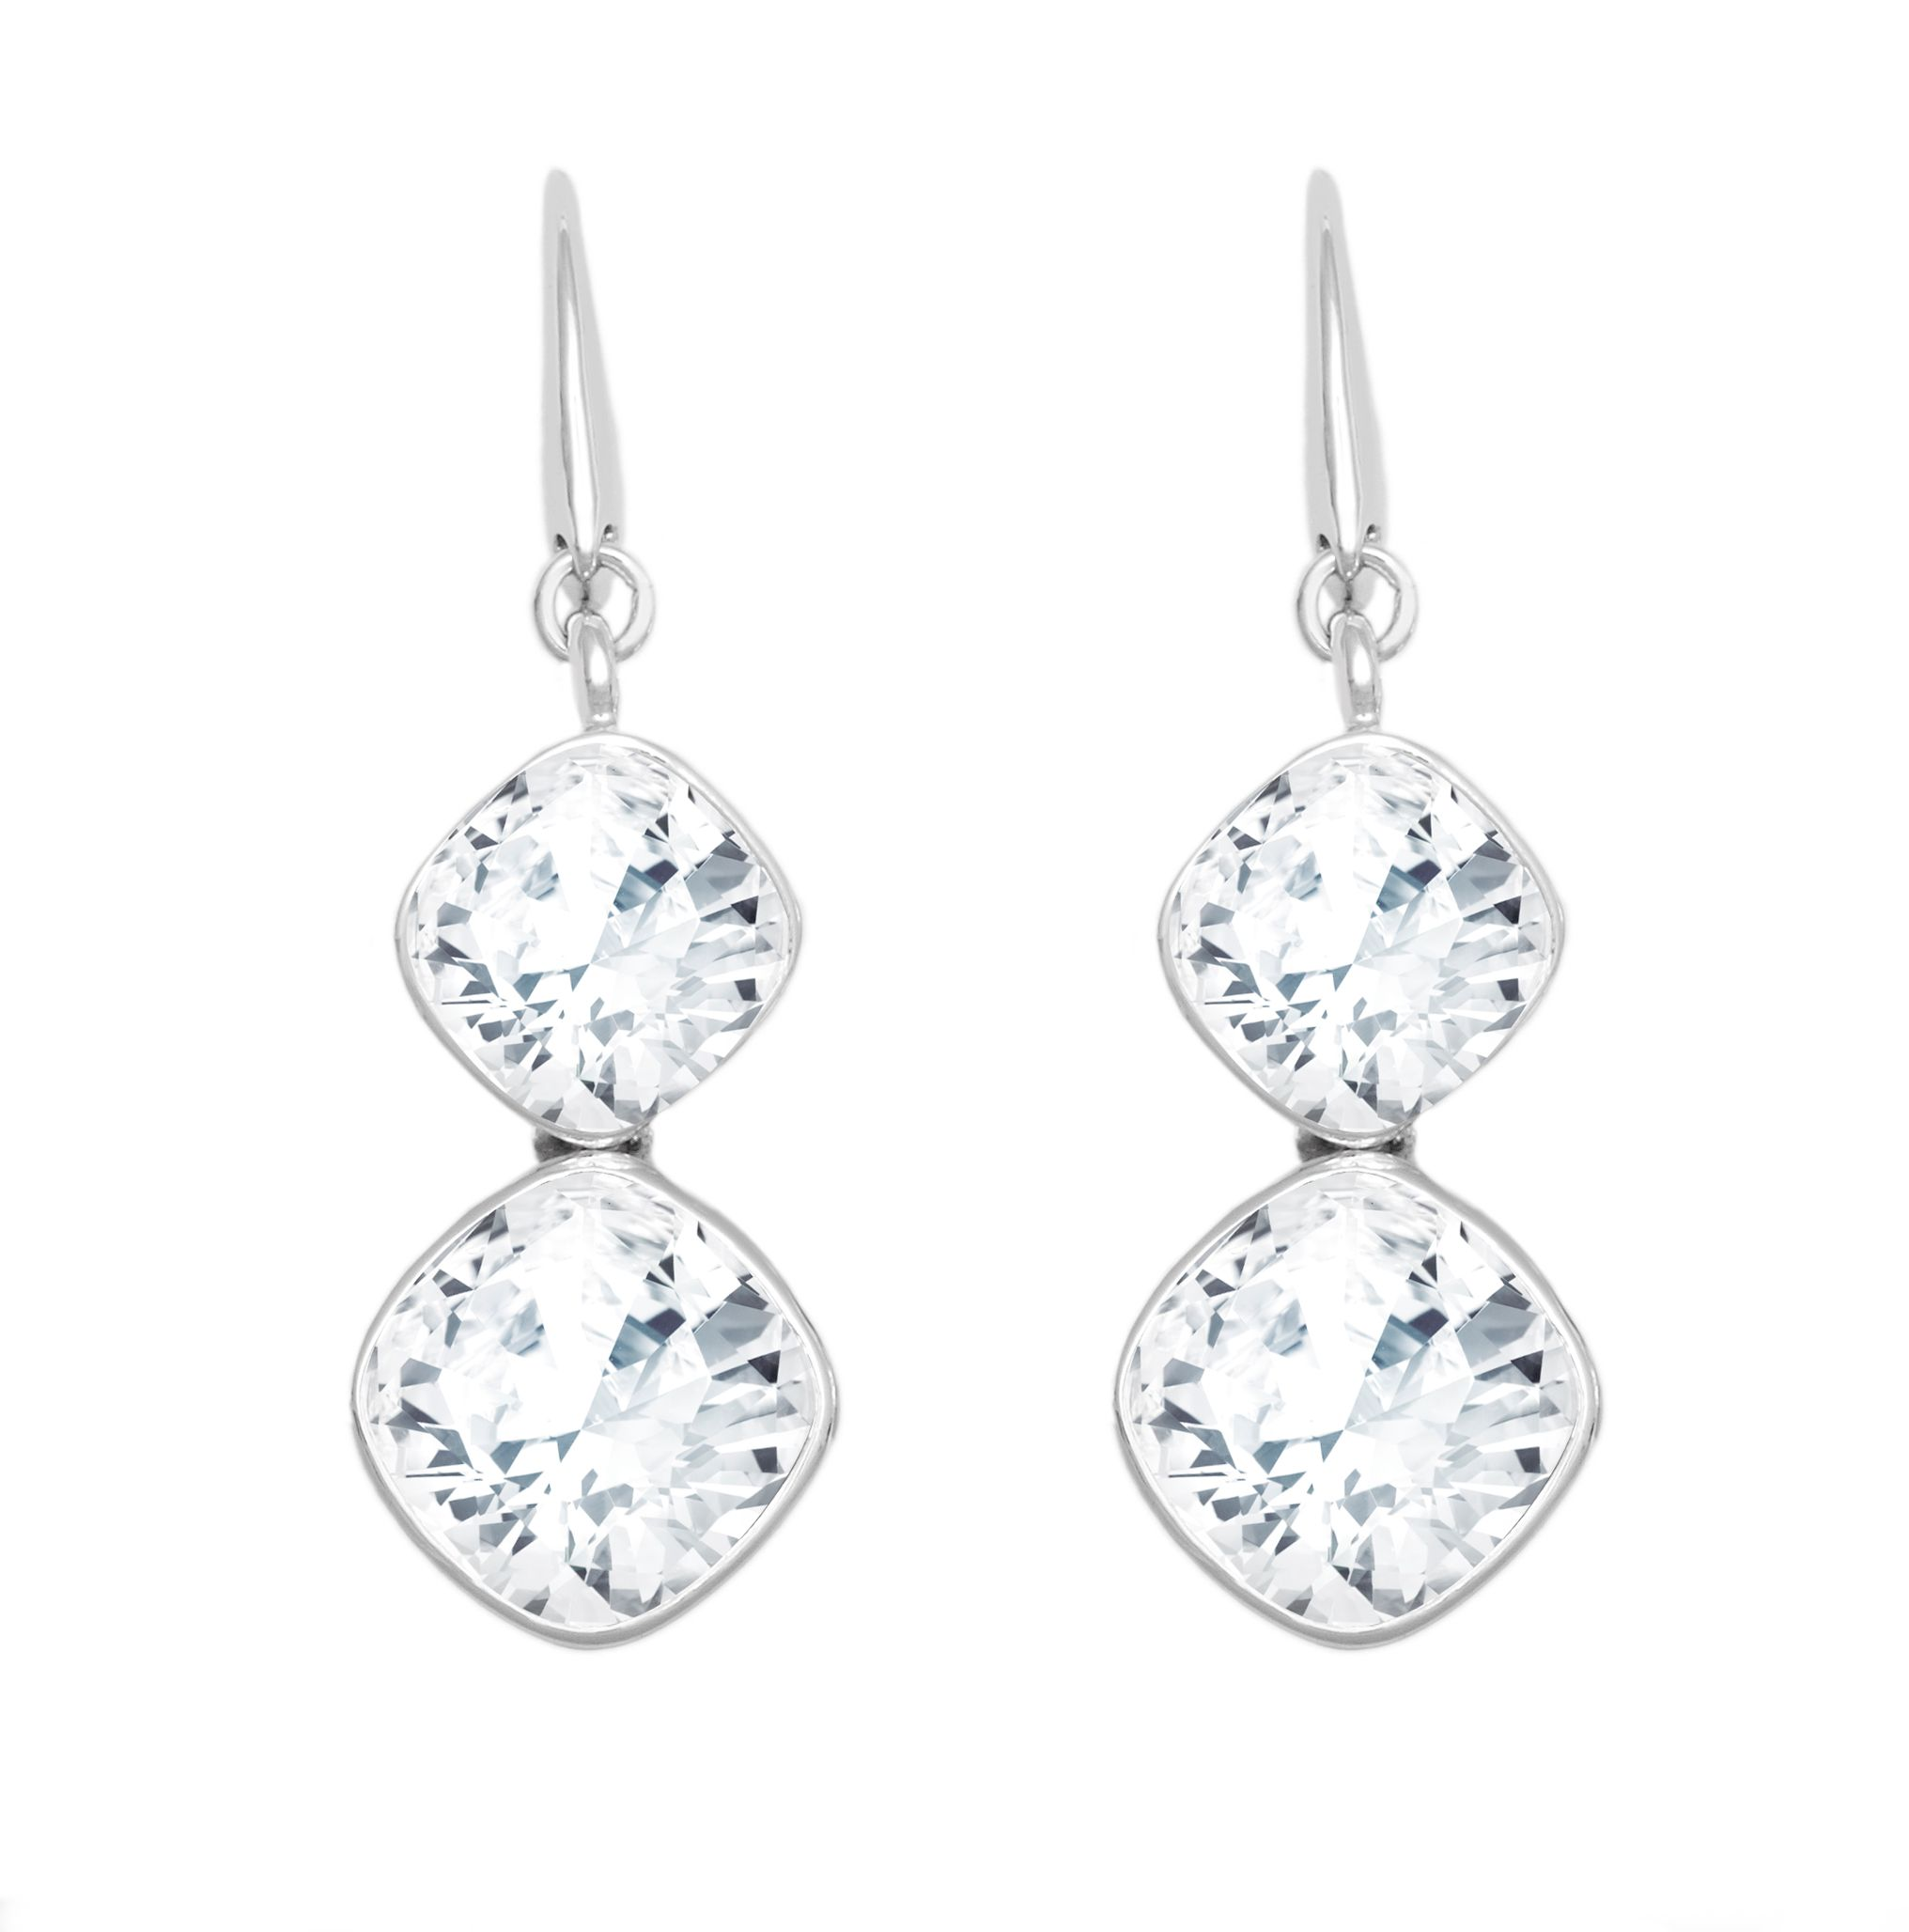 18ct White Gold Plated Earrings